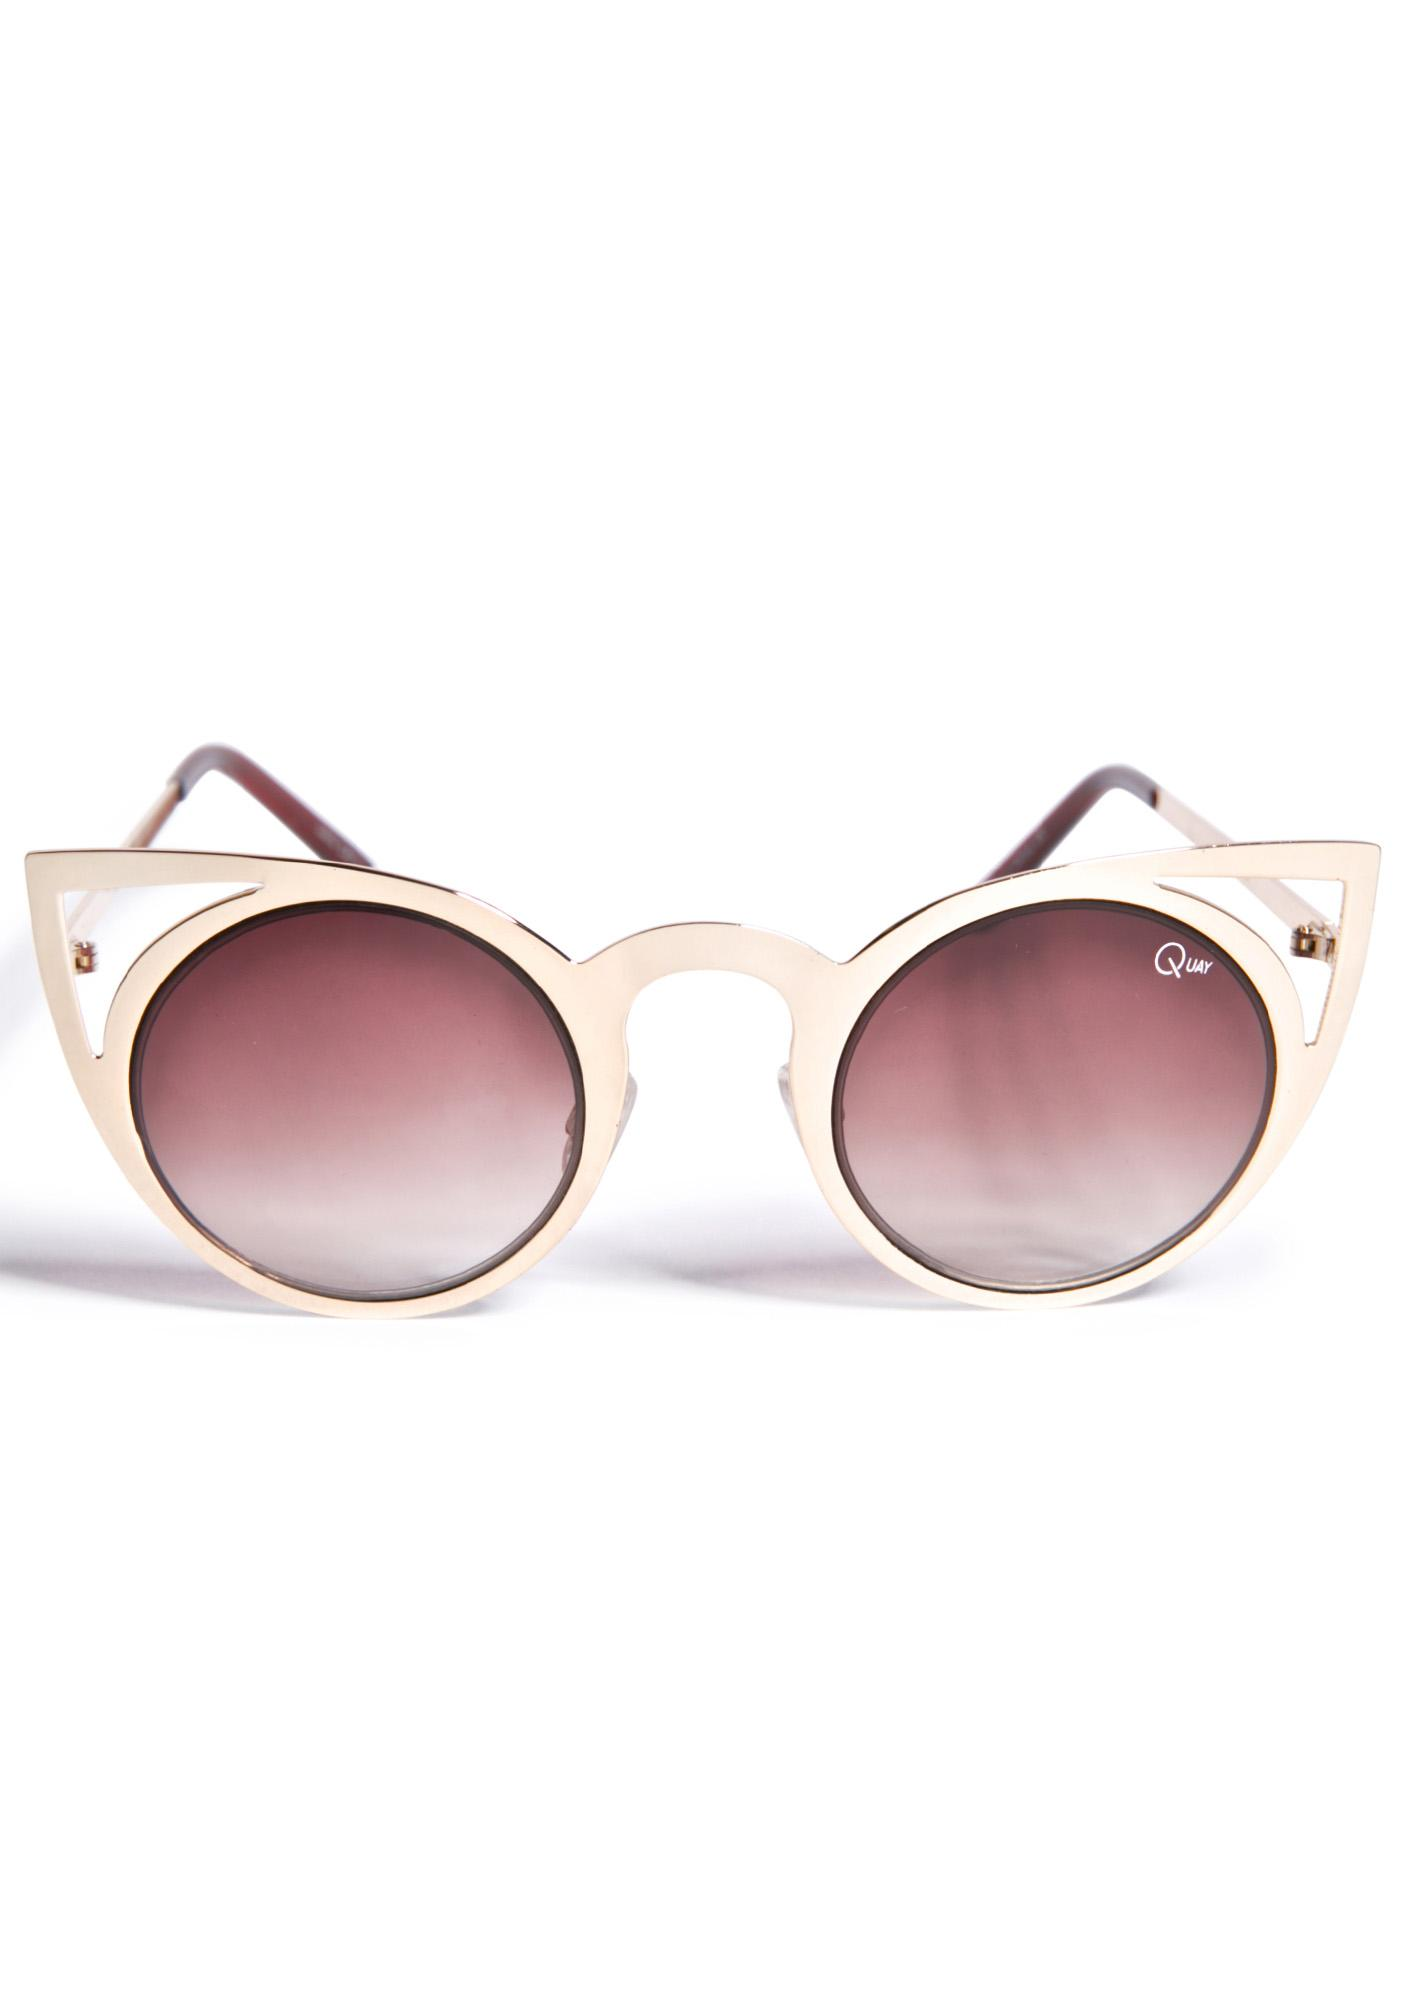 Quay Eyeware Invader Sunglasses